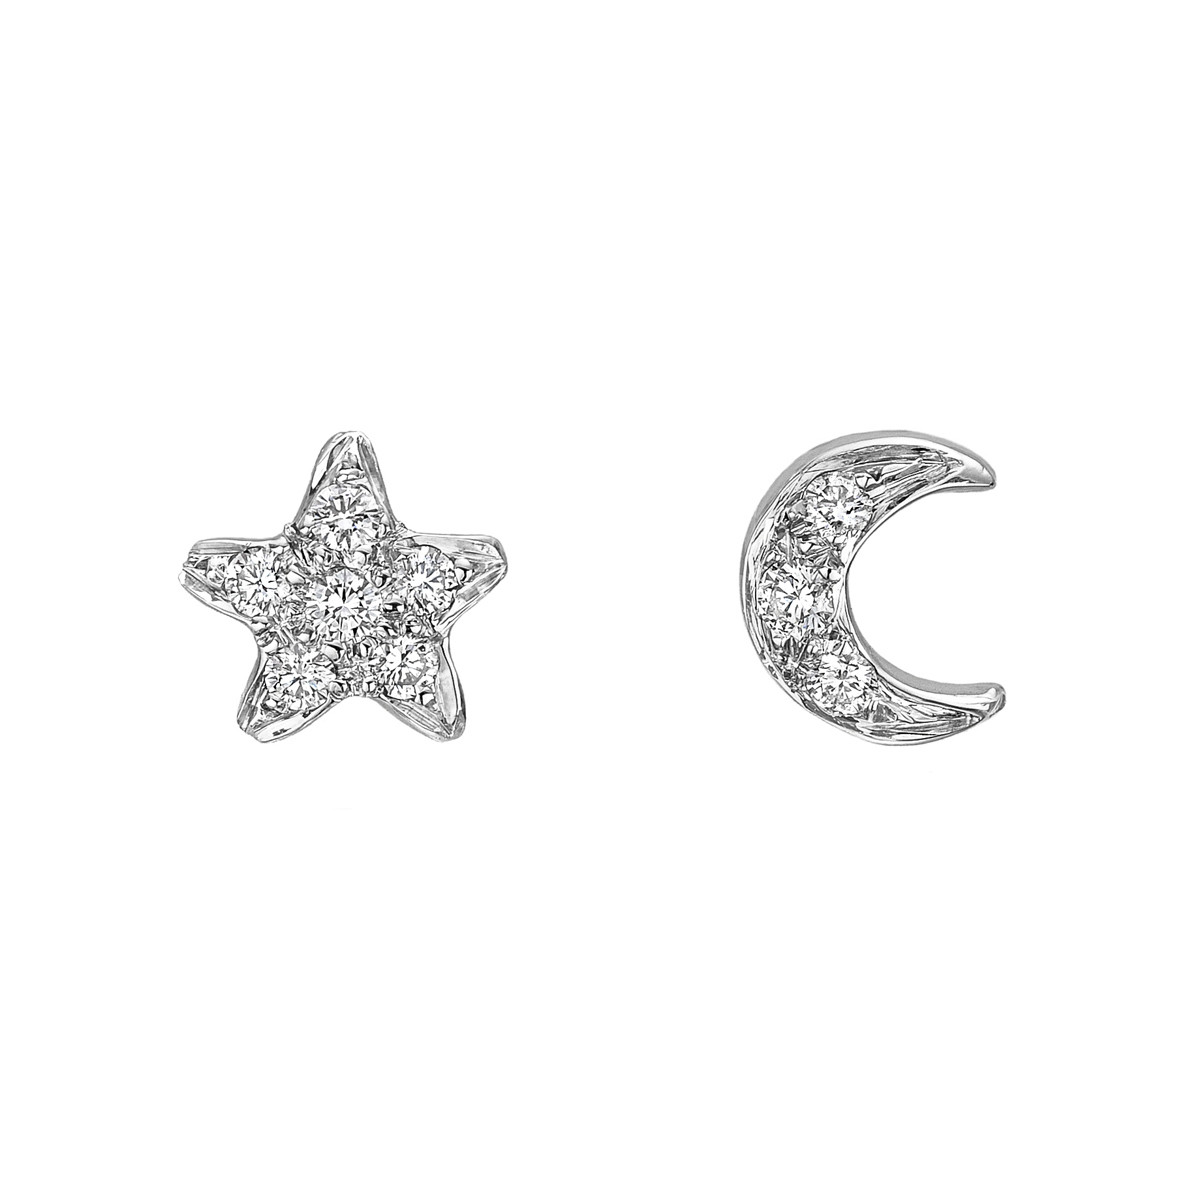 Small 18k White Gold & Diamond Star & Moon Earstuds